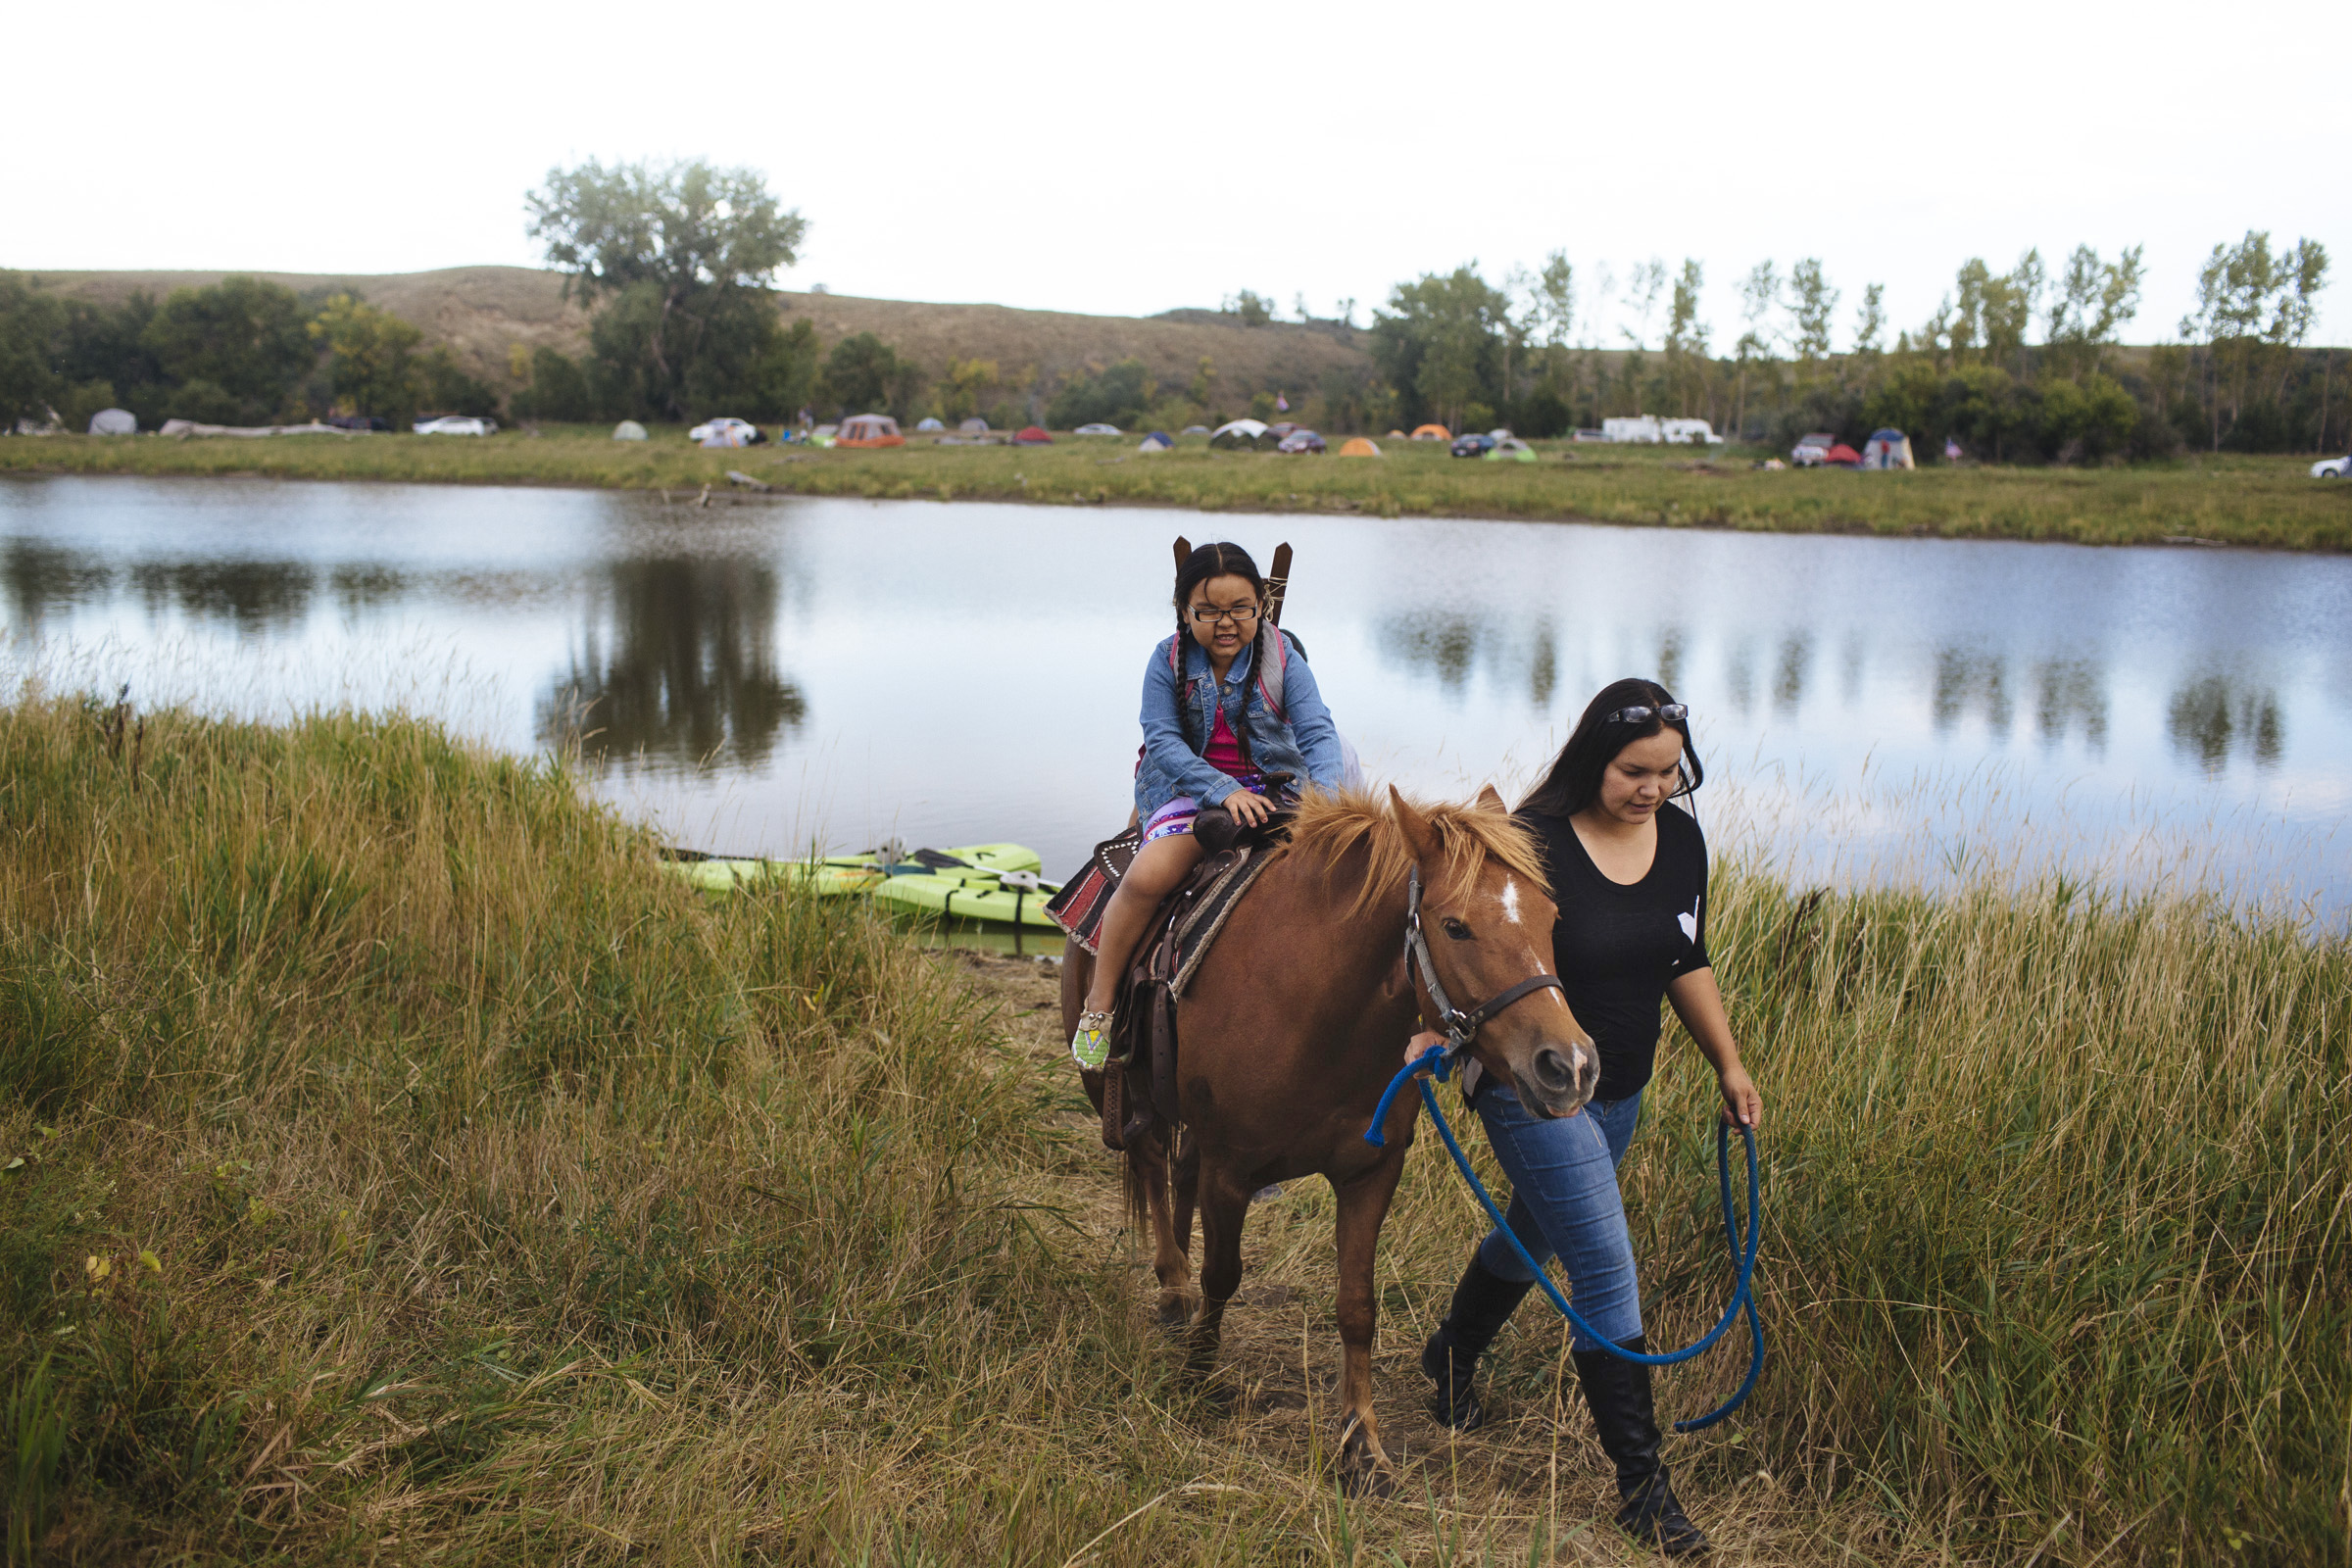 Marley Brown, 5, and her mother Tiffany Baker, 32, of Standing Rock Reservation take their horse, Pony Boy, for a walk along the Cannonball River in the Oceti Sakowin Camp on the outskirts of the Standing Rock Reservation on Thursday, Sept. 8, 2016. Thousands of people, including Native Americans from over 280 tribes, have come to Standing Rock to protest the construction of the Dakota Access Pipeline, a 1,172-mile underground crude oil pipeline which is expected to transport the oil from the Bakken region to an oil tank farm in Patoka, Illinois. (Photo by Angus Mordant/Groundtruth)